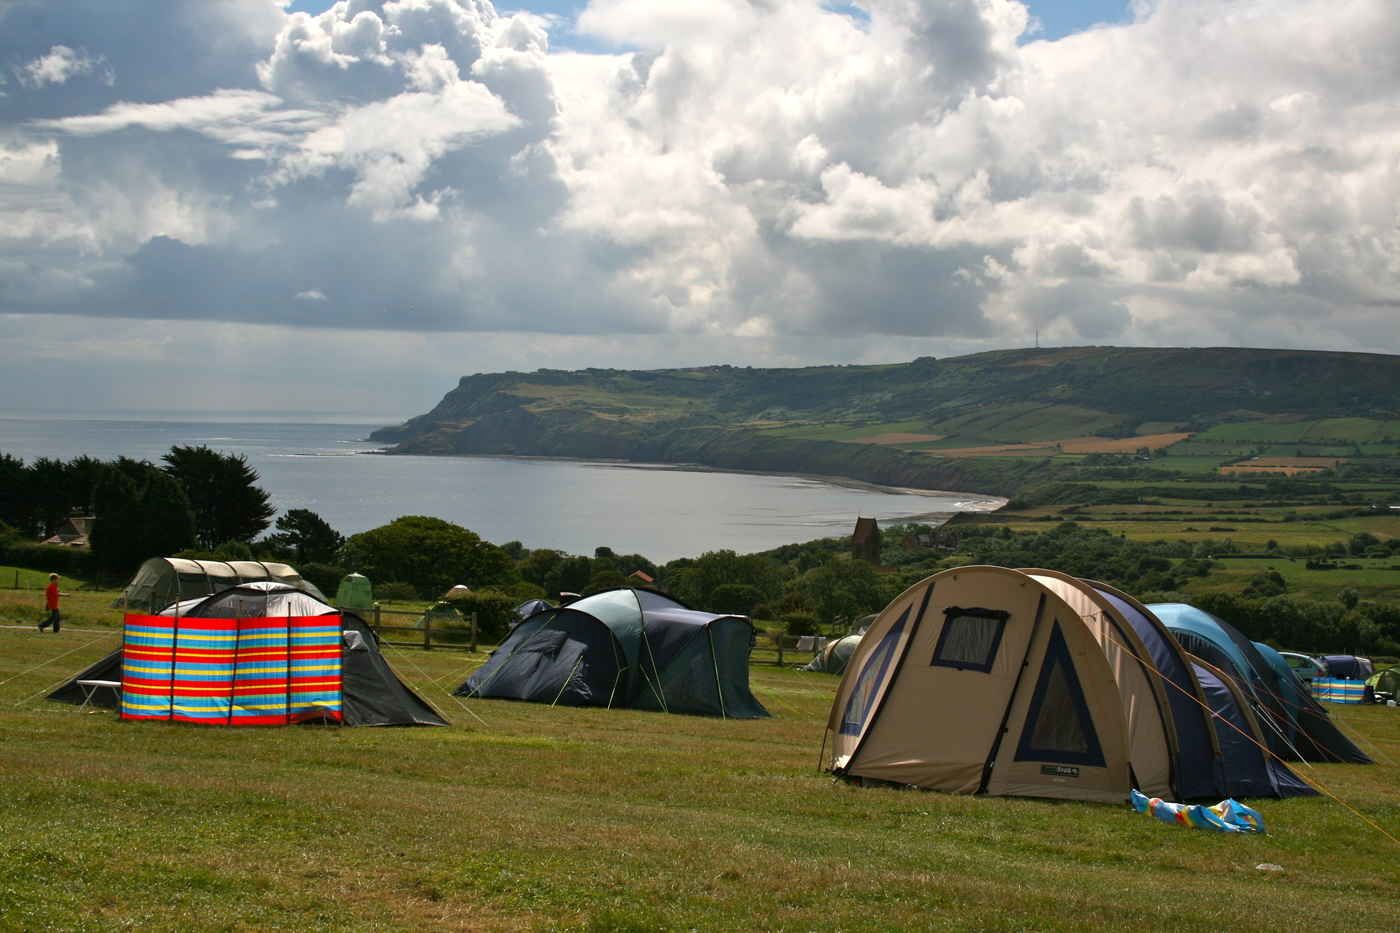 Campsites in the North East